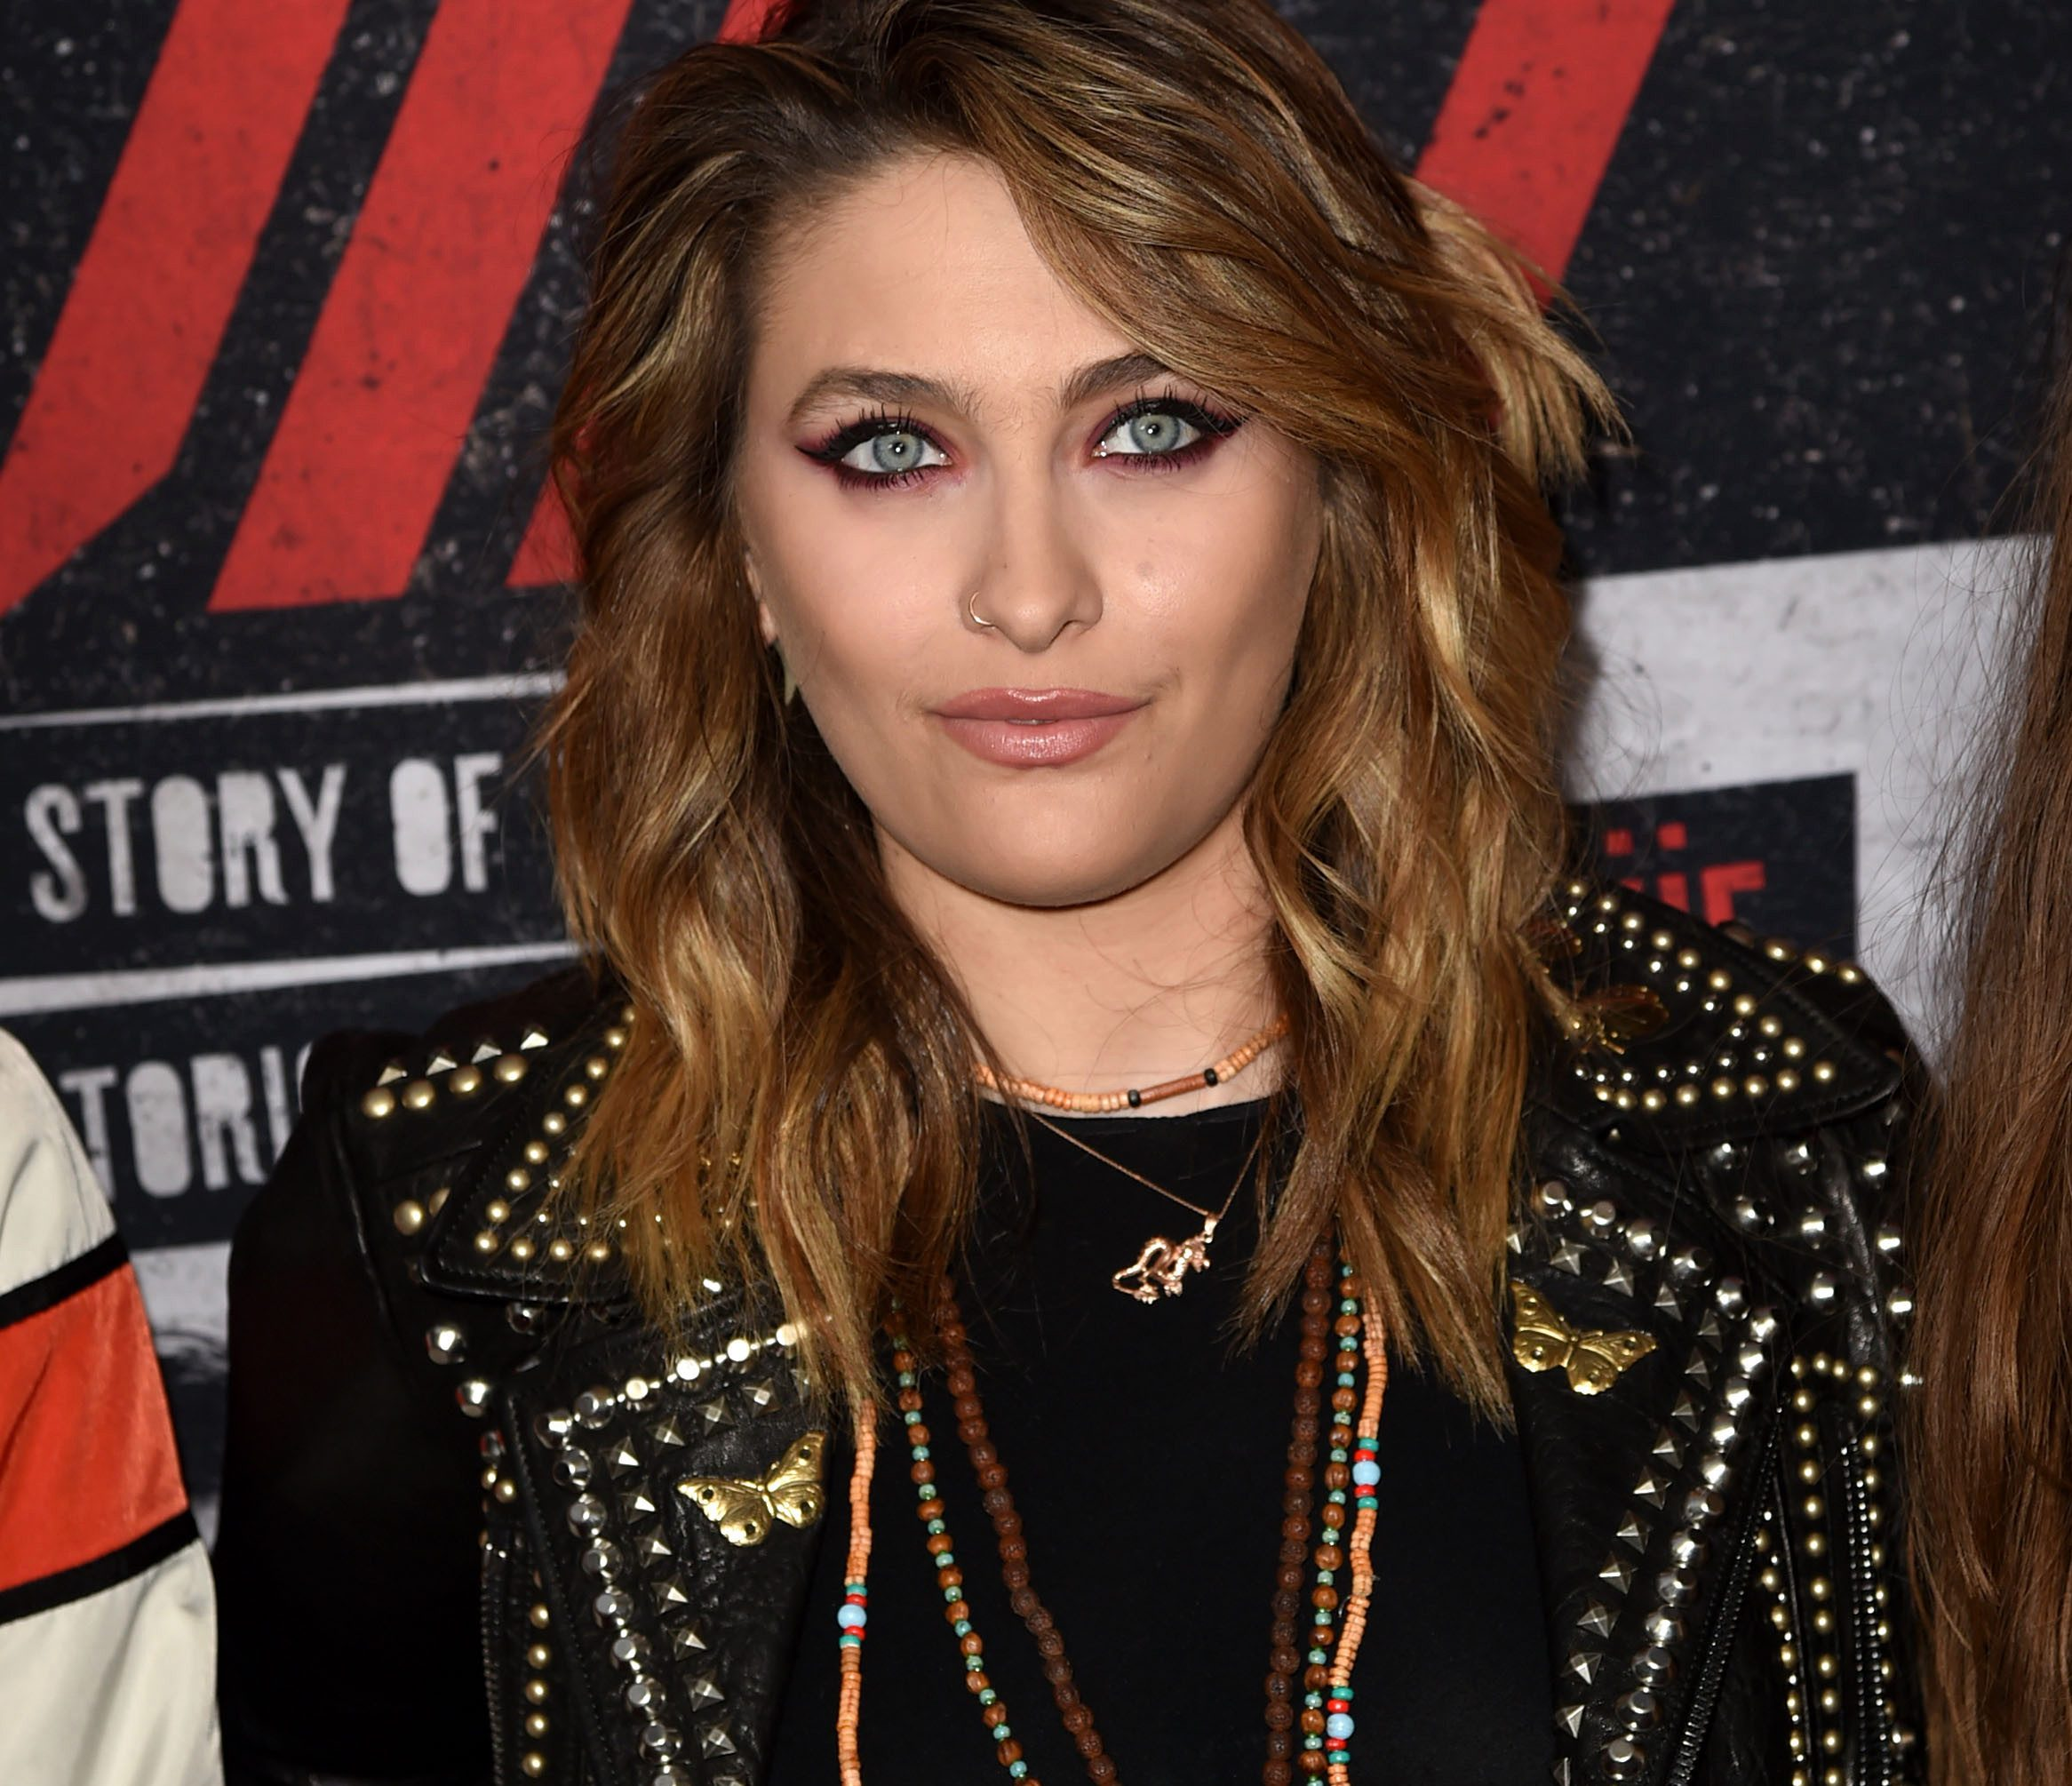 Paris Jackson 'refuses rehab for underlying problems' as she heads out with boyfriend Gabriel Glenn